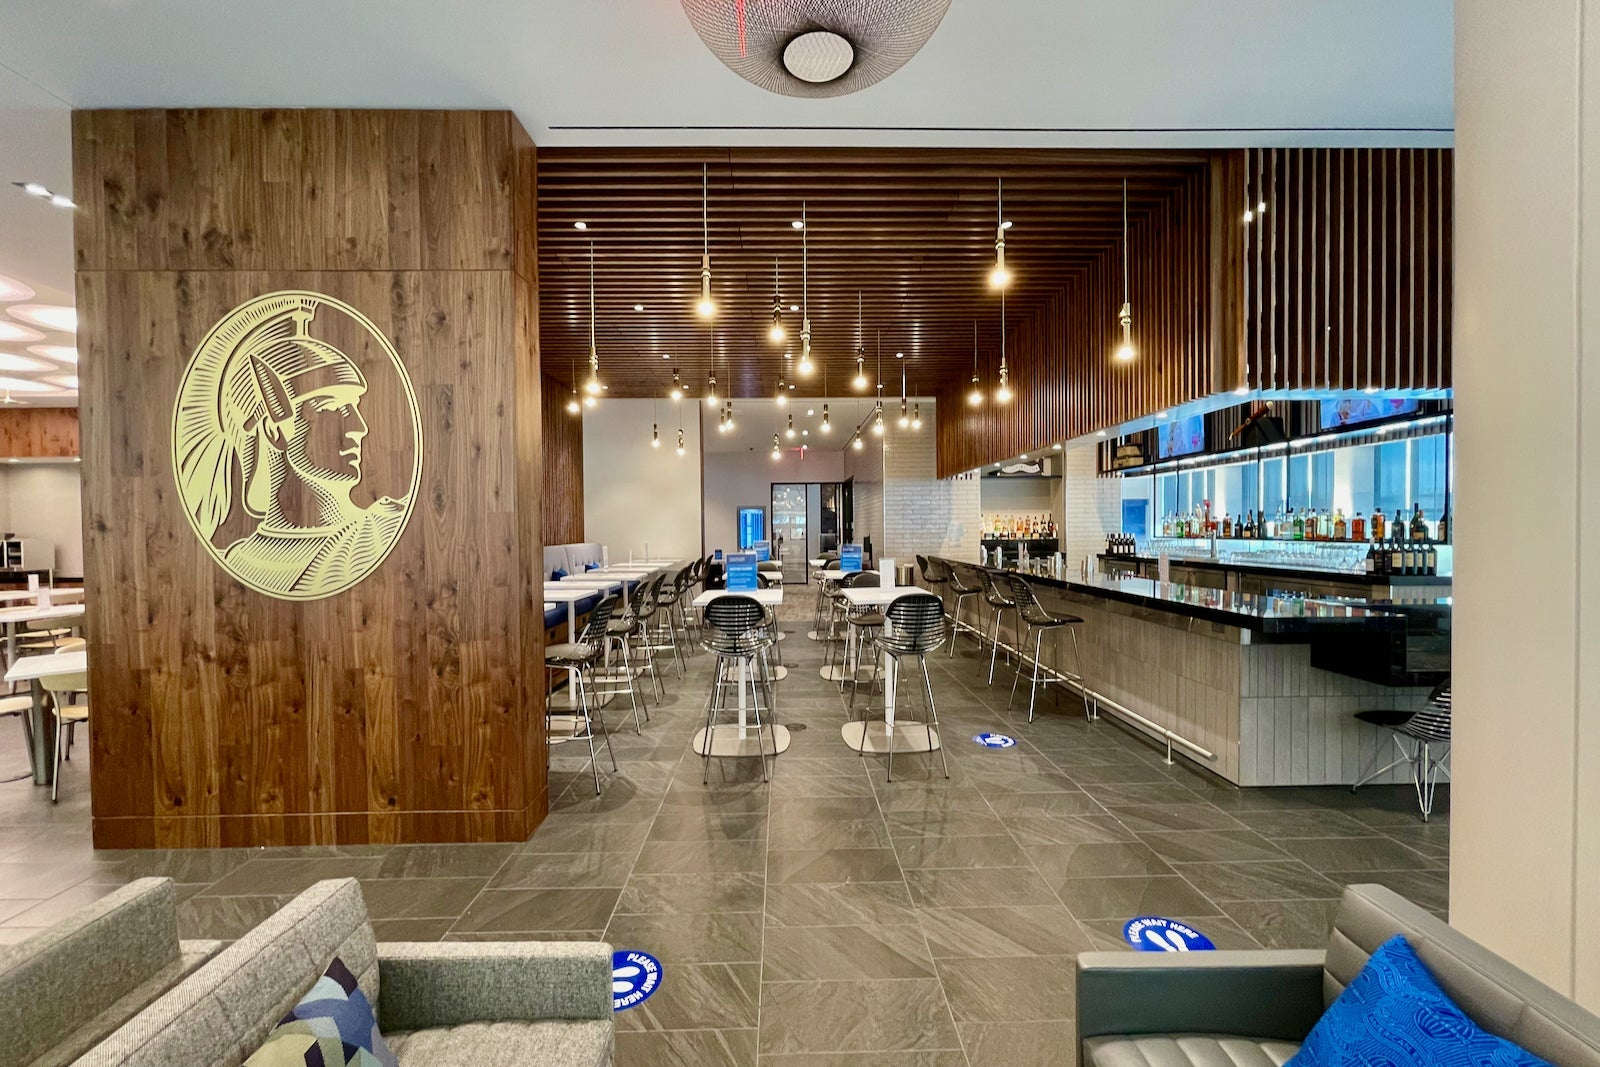 American Express eyes Newark for its largest Centurion Lounge to date - The Points Guy UK